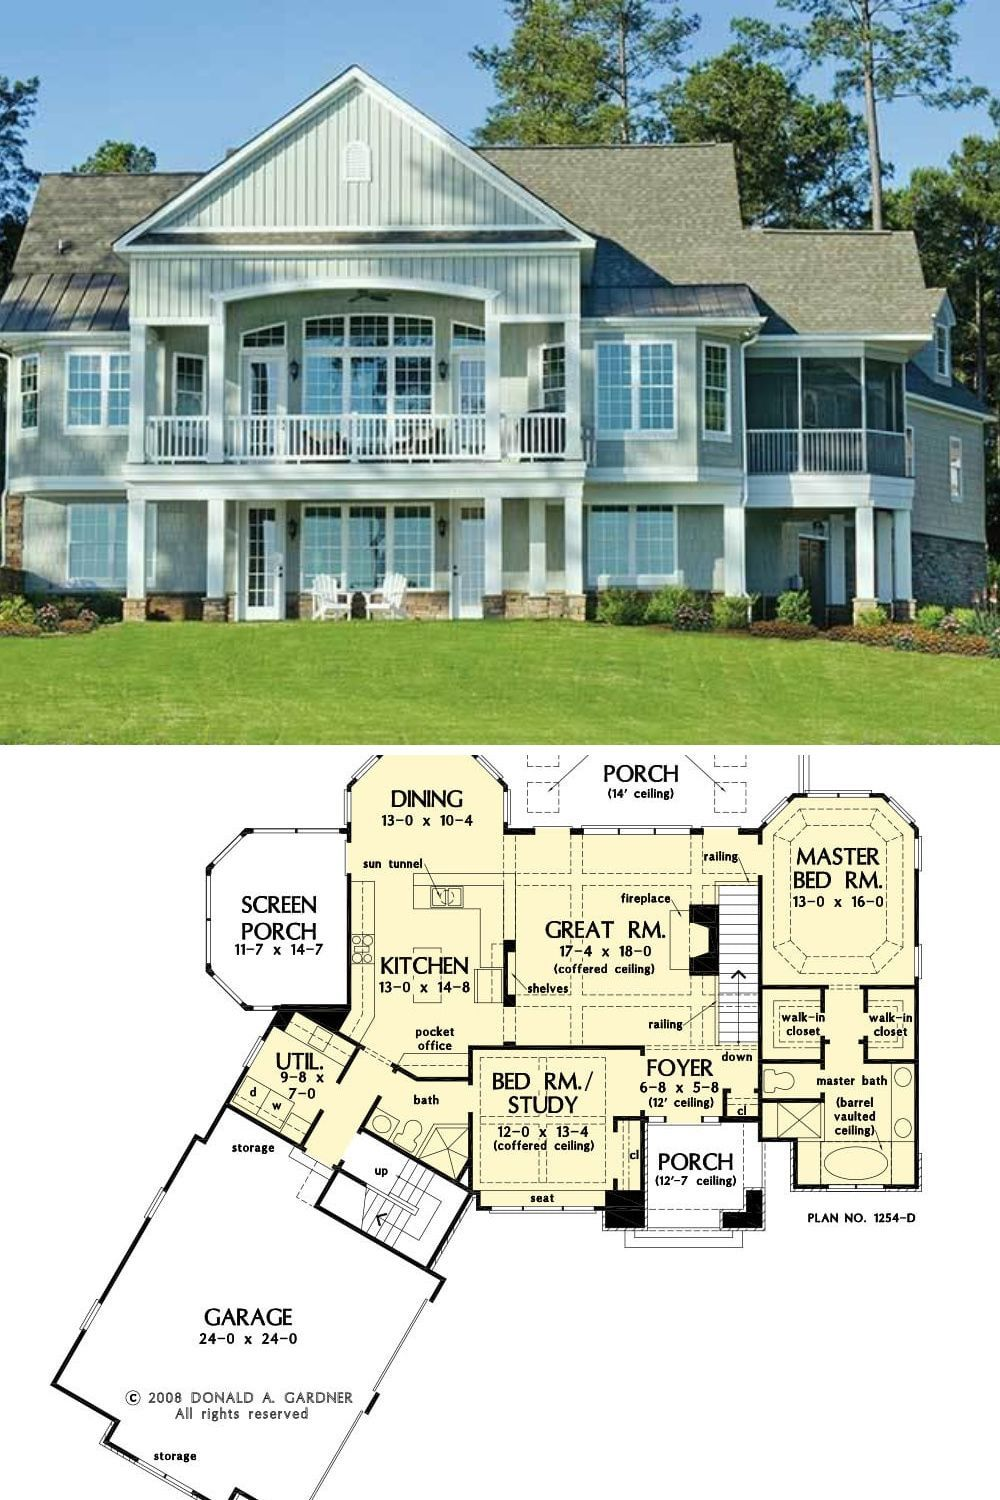 4 Bedroom 2 Story Craftsman Style Sloping Lot Hillside House Plan The Silvergate Home In 2020 Hillside House House Plans Outdoor Sconces